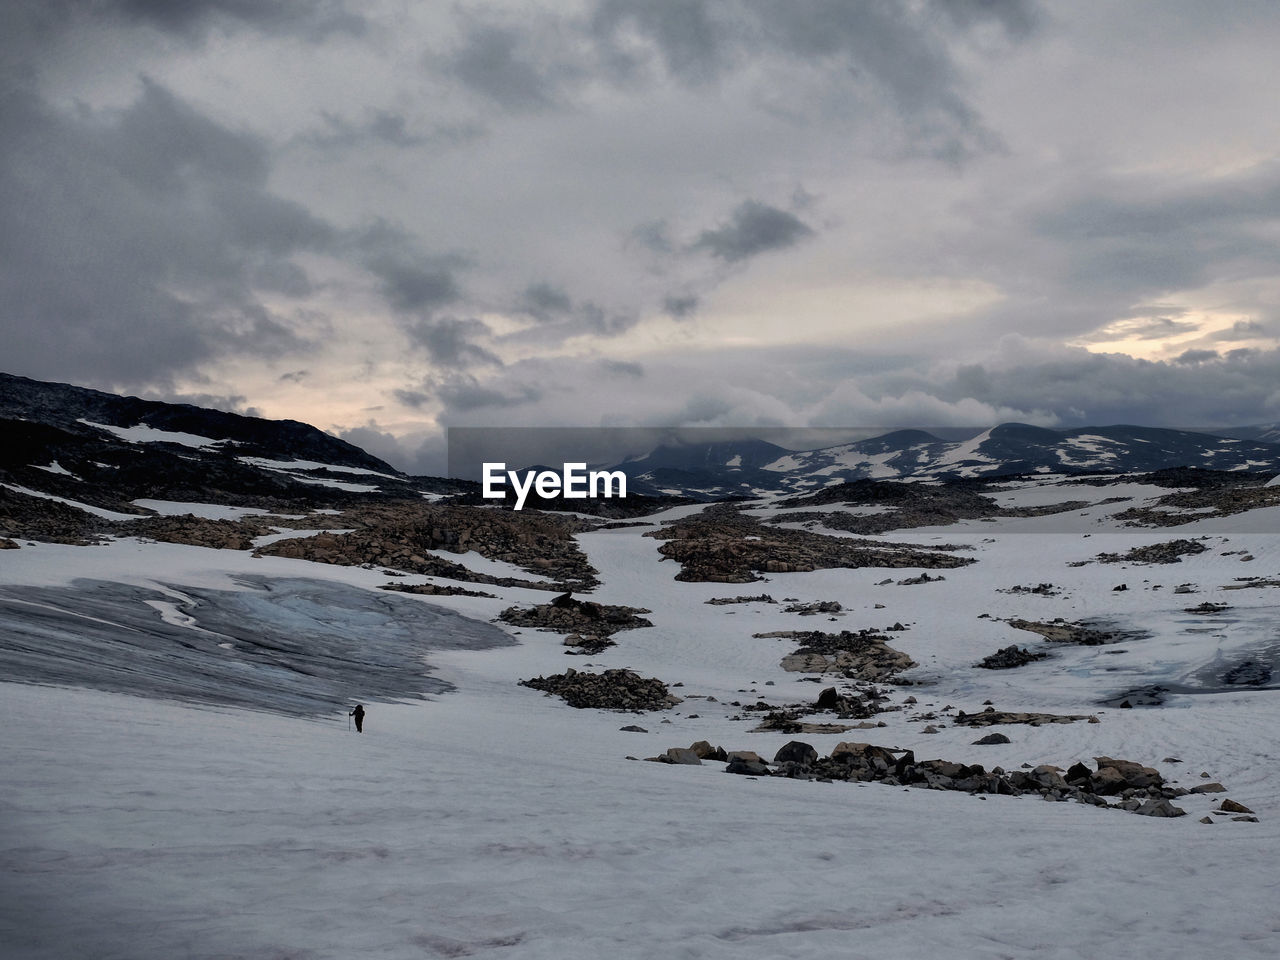 lonely hiker in Breheimen National Park in Norway where you can experience barren mountains, streaming rivers, opalescent glaciers and rough untouched nature. Breheimen Lonely National Park Norway The Great Outdoors - 2018 EyeEm Awards Adventure Beauty In Nature Cold Temperature Environment Freedom Landscape Mountain Mountain Peak Mountain Range Nature No People Non-urban Scene Norway Nature Outdoors Remote Snow Wilderness